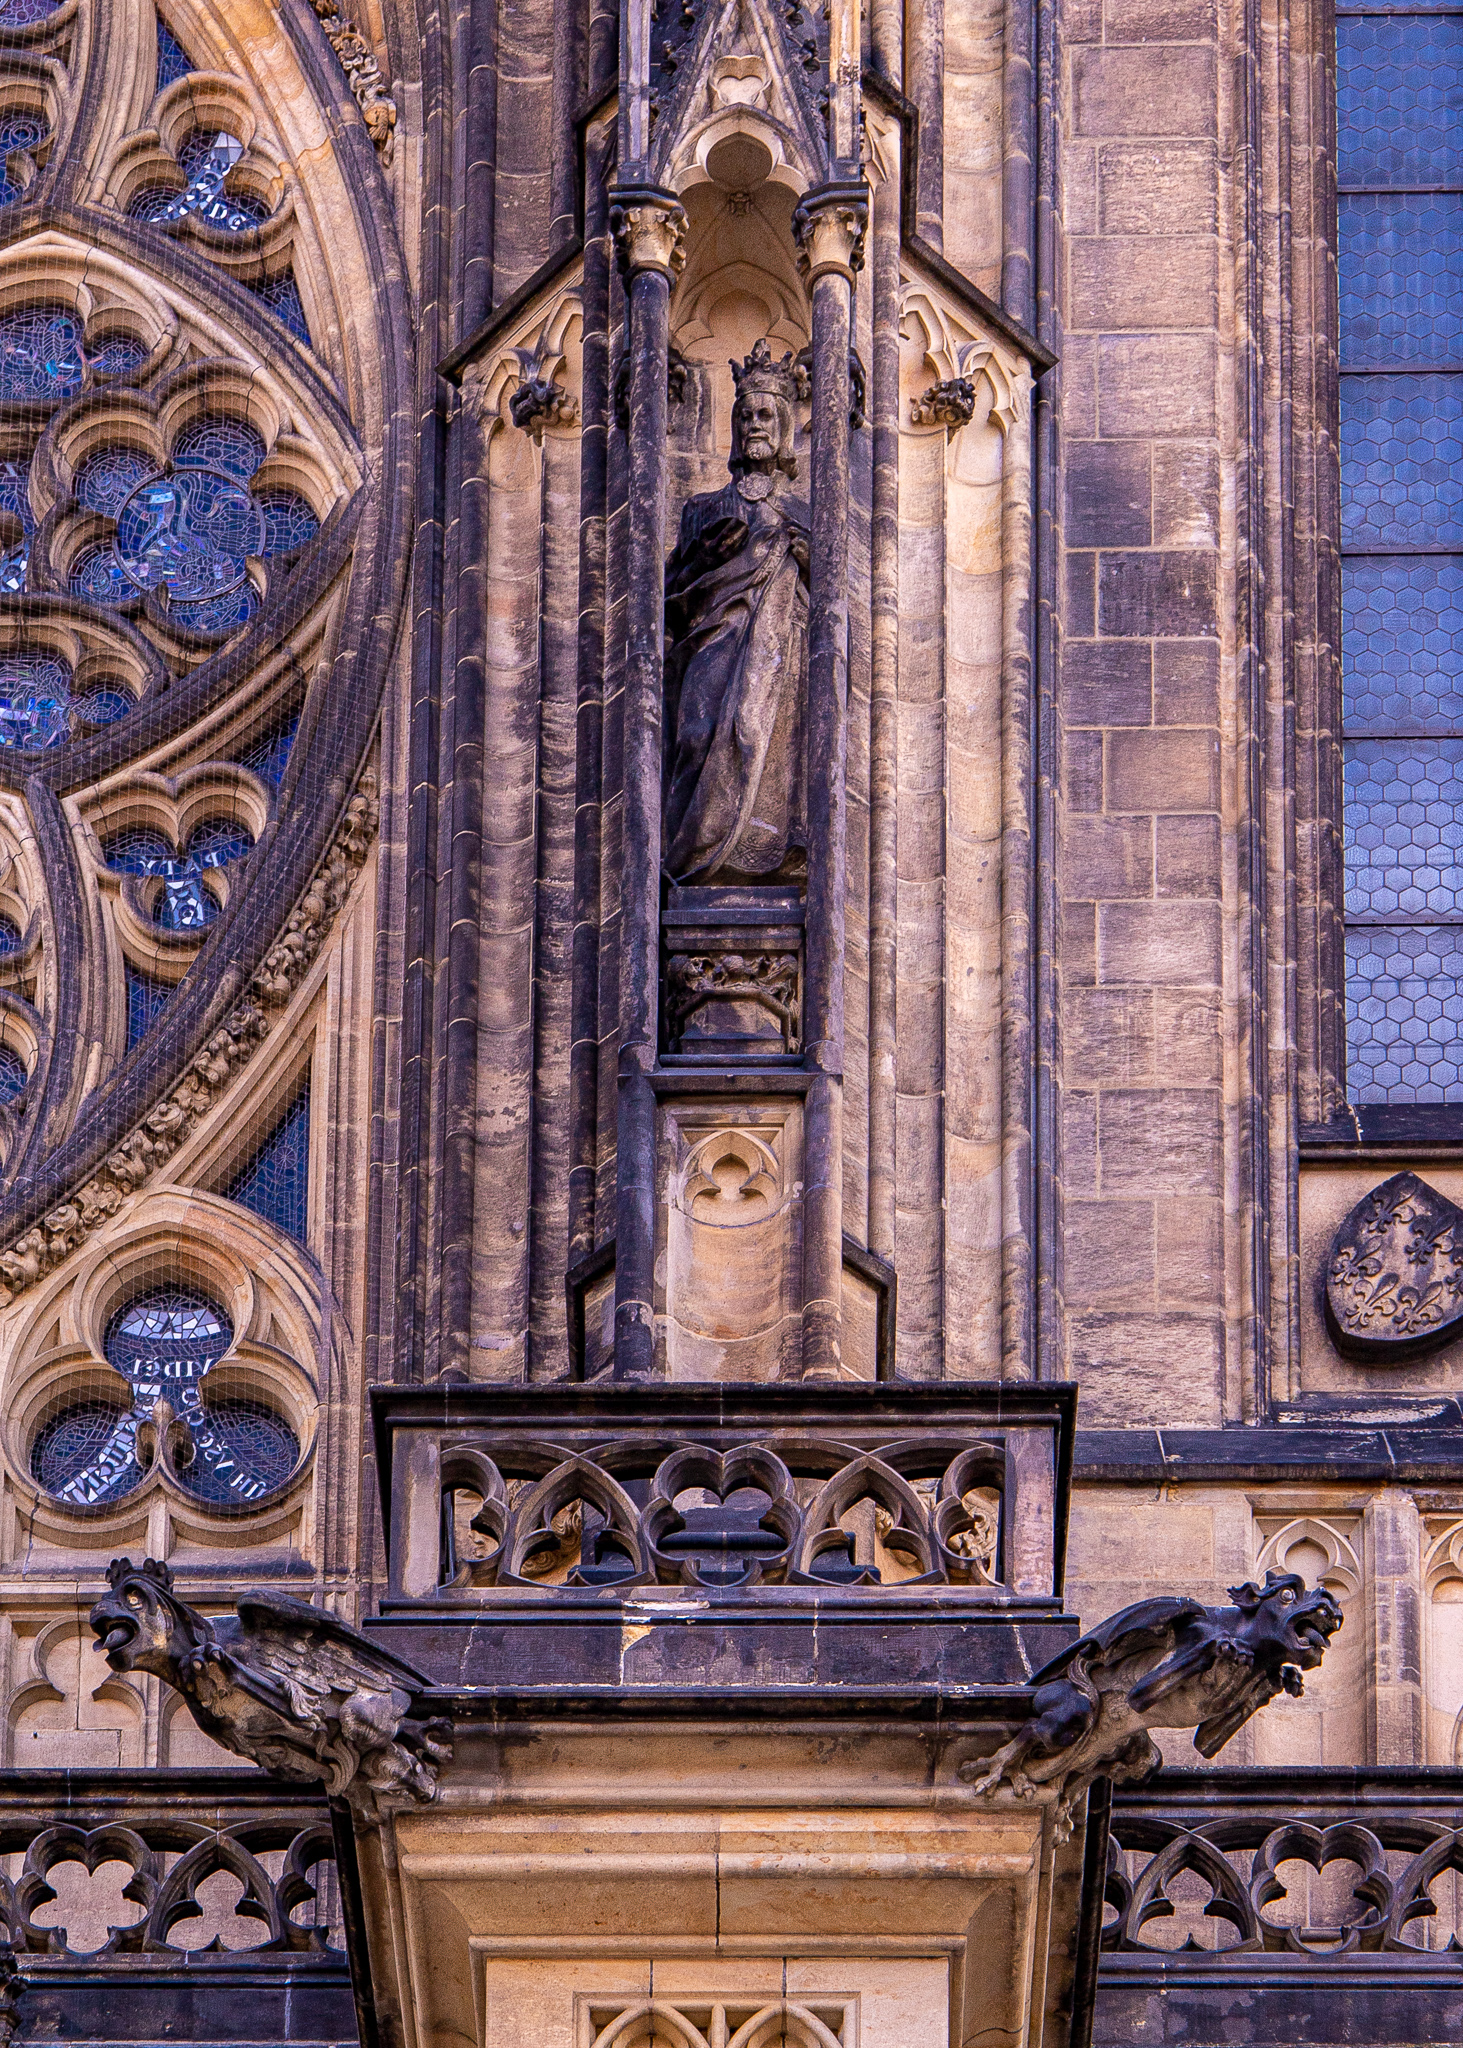 Guardians of the cathedral